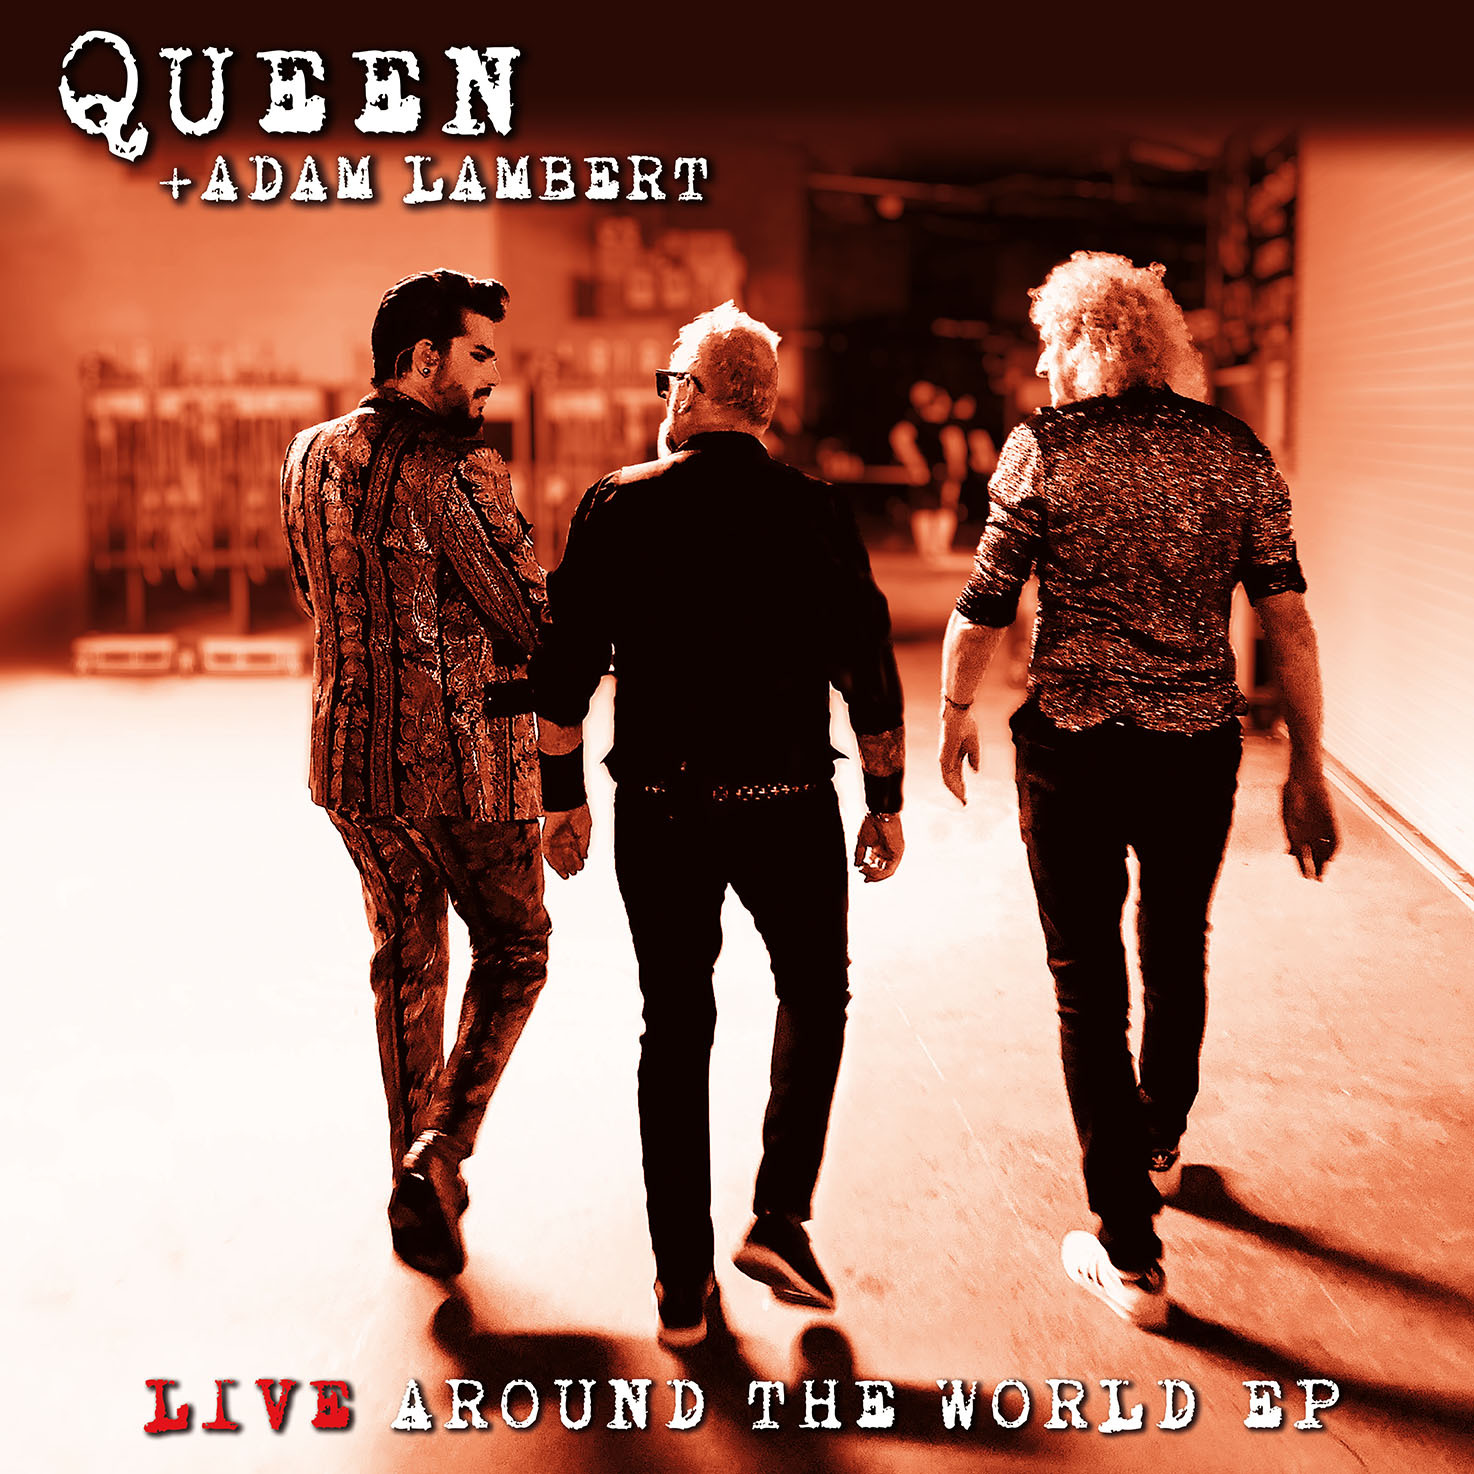 Queen + Adam Lambert, Freddie Mercury - Live Around the World / Love Me Like There's No Tomorrow [RSD Drops 2021]